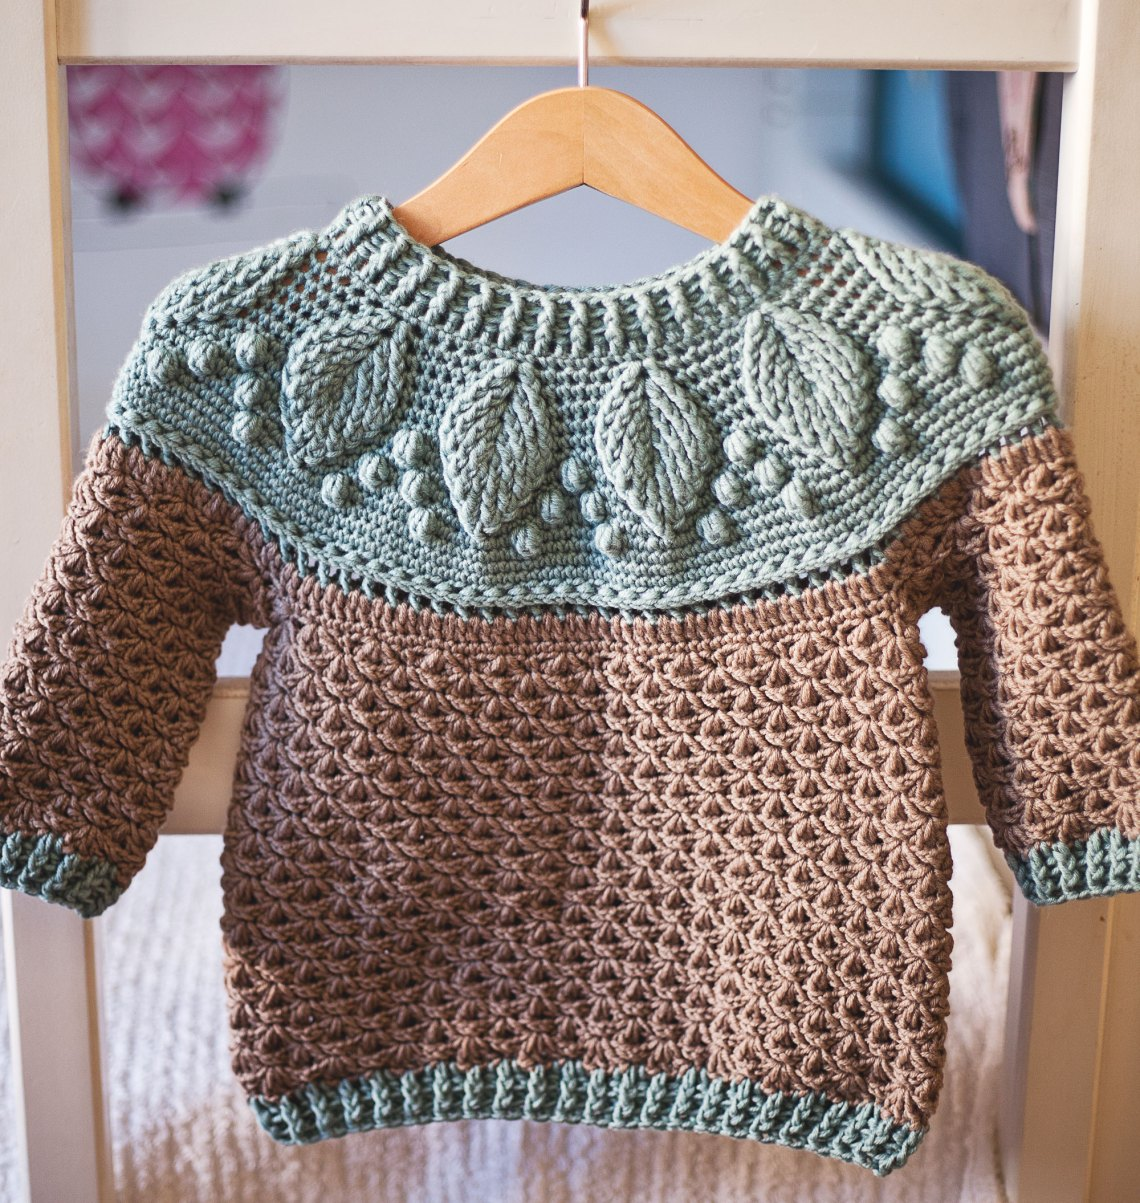 Harvest Sweater, crochet pattern by Mon Petit Violon